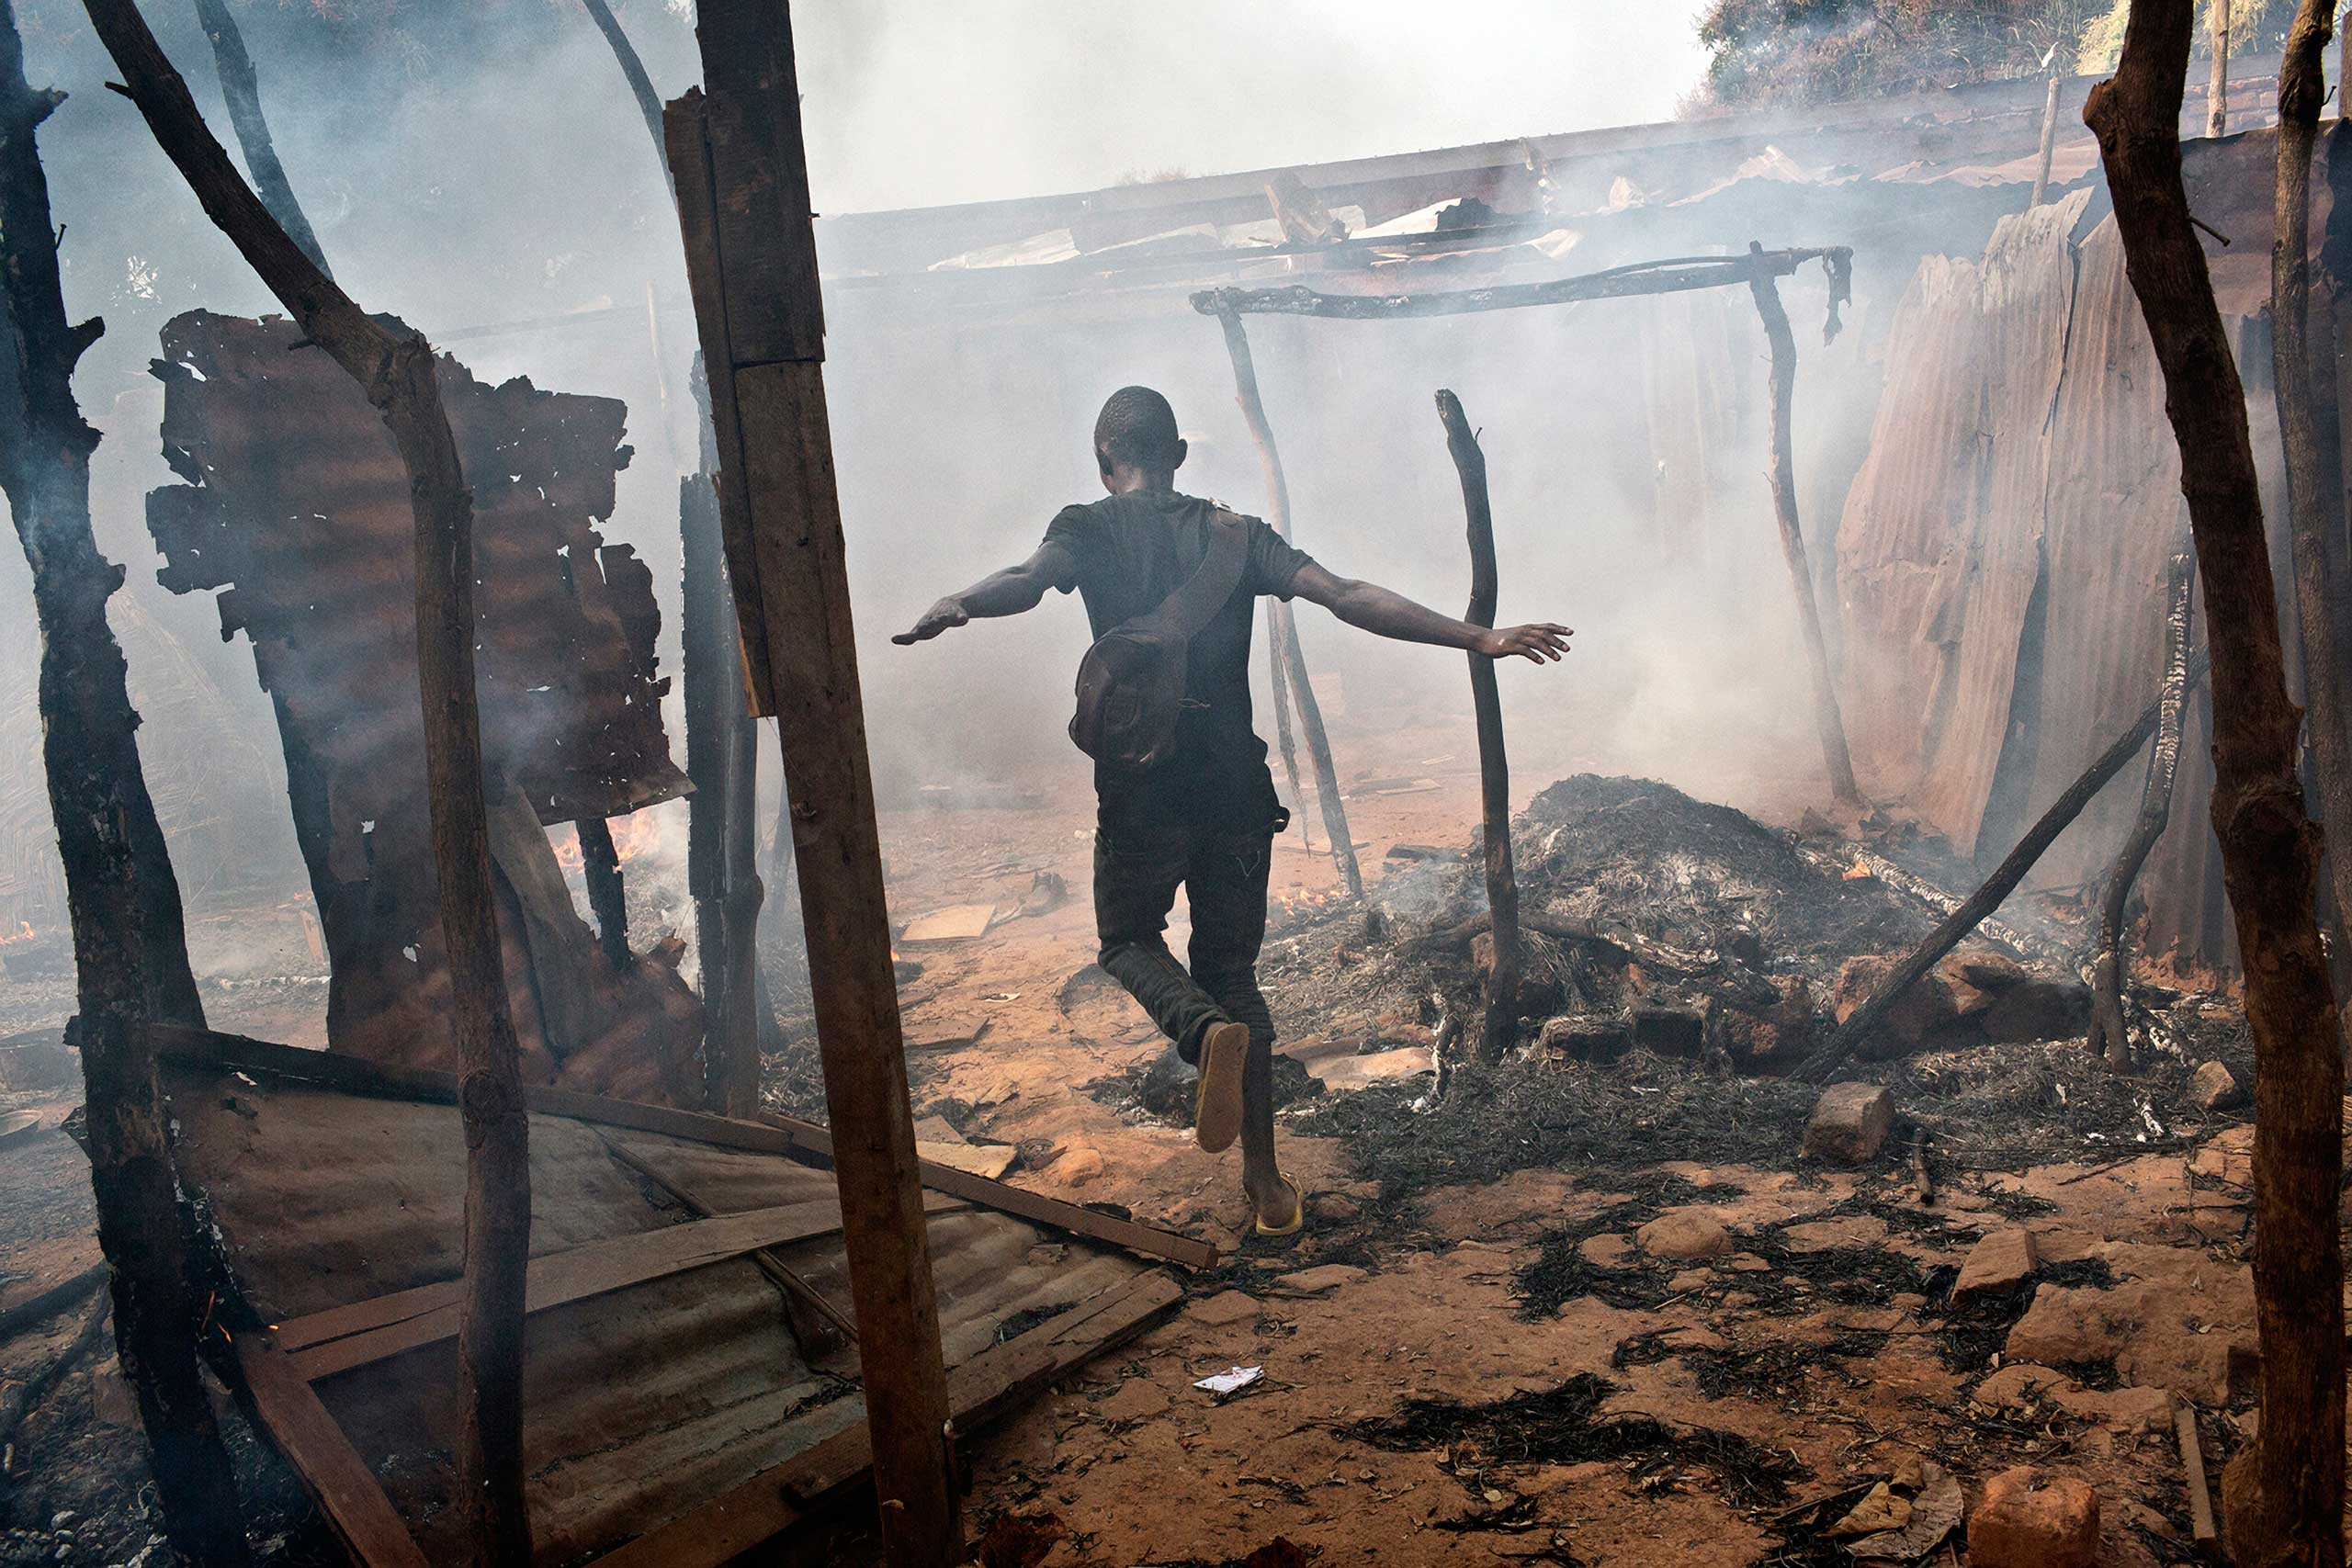 A member of the Christian population around PK13 on the outskirts of Bangui runs through looted and burning homes of the Muslims who have fled after the Seleka President Michel Djotodia resigned and left the country in disarray The country was ruled by a minority Muslim government after the coup in March 2013. After months of oppression by the Muslim Seleka Government the local population take out their anger and frustrations on the largely innocent Muslim population.